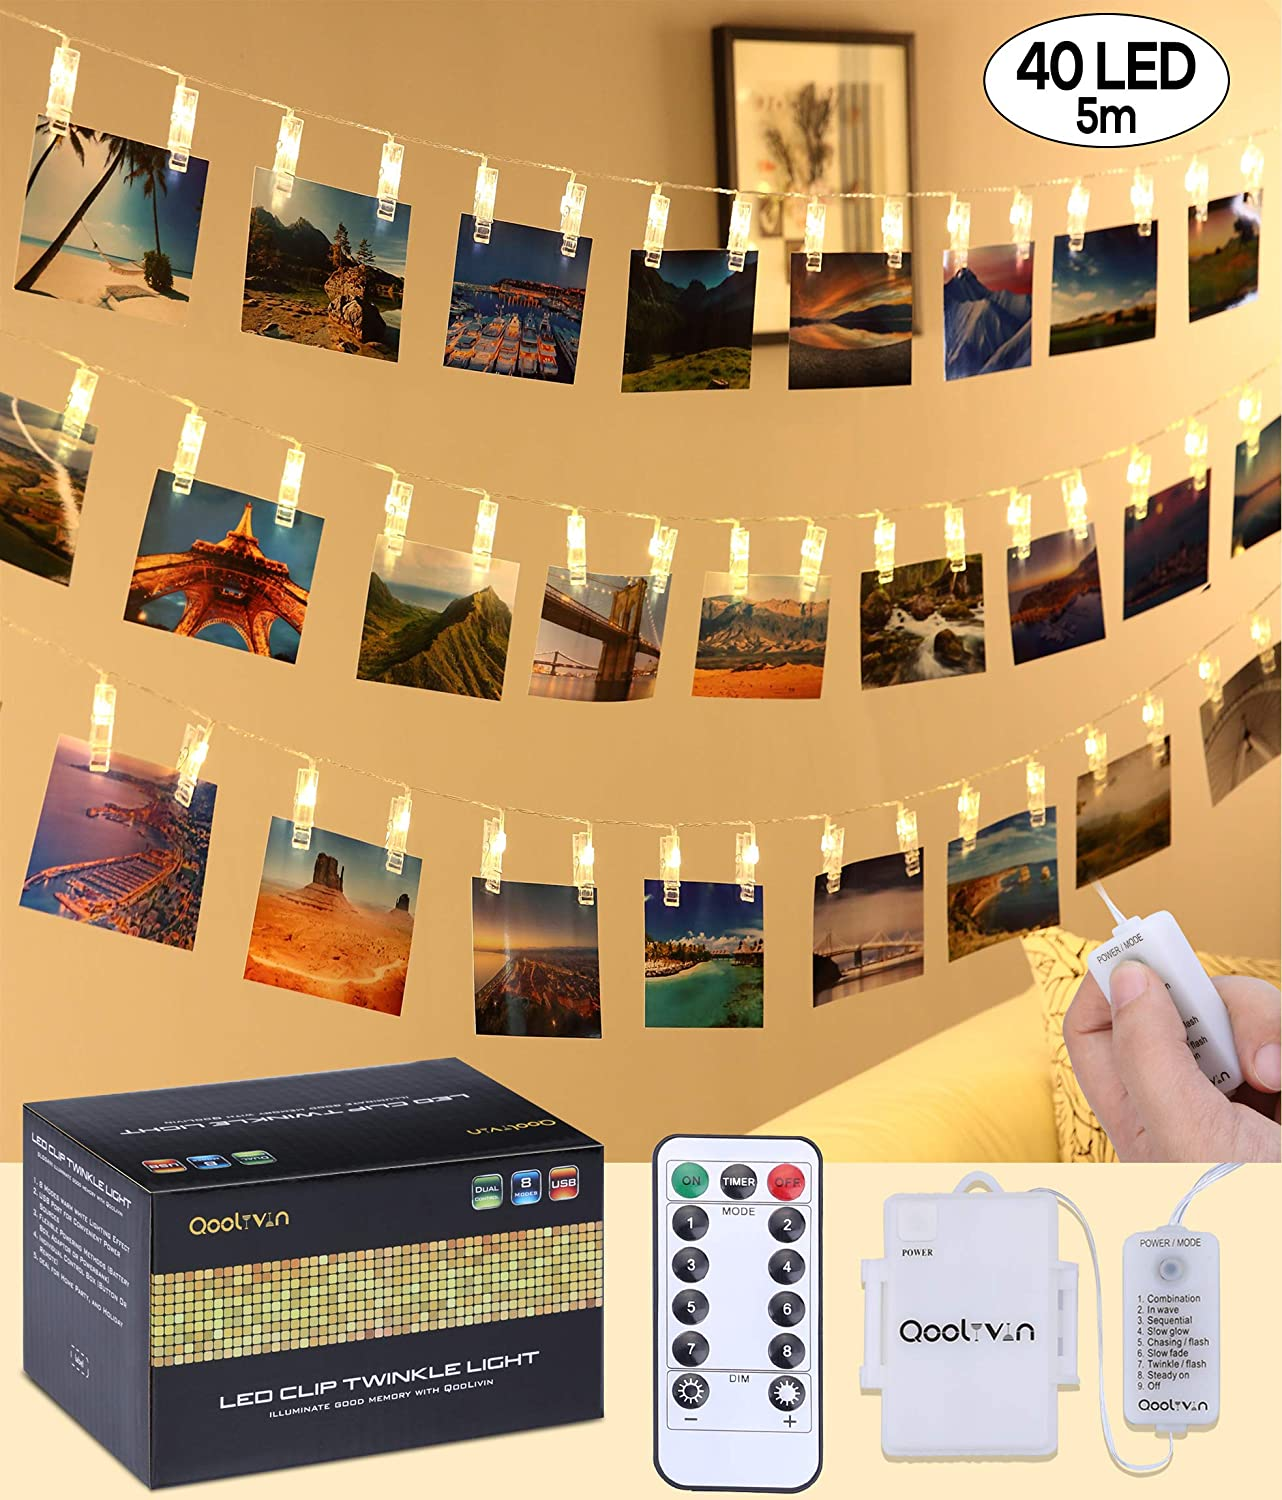 Clips Fairy Lights for Picture Hanging - New Generation Qoolivin 3M 20 LED Clips USB Plug Photo Clips String Battery Powered Peg lights with Remote Control and Battery Box for Wall Room Decoration Alilimall